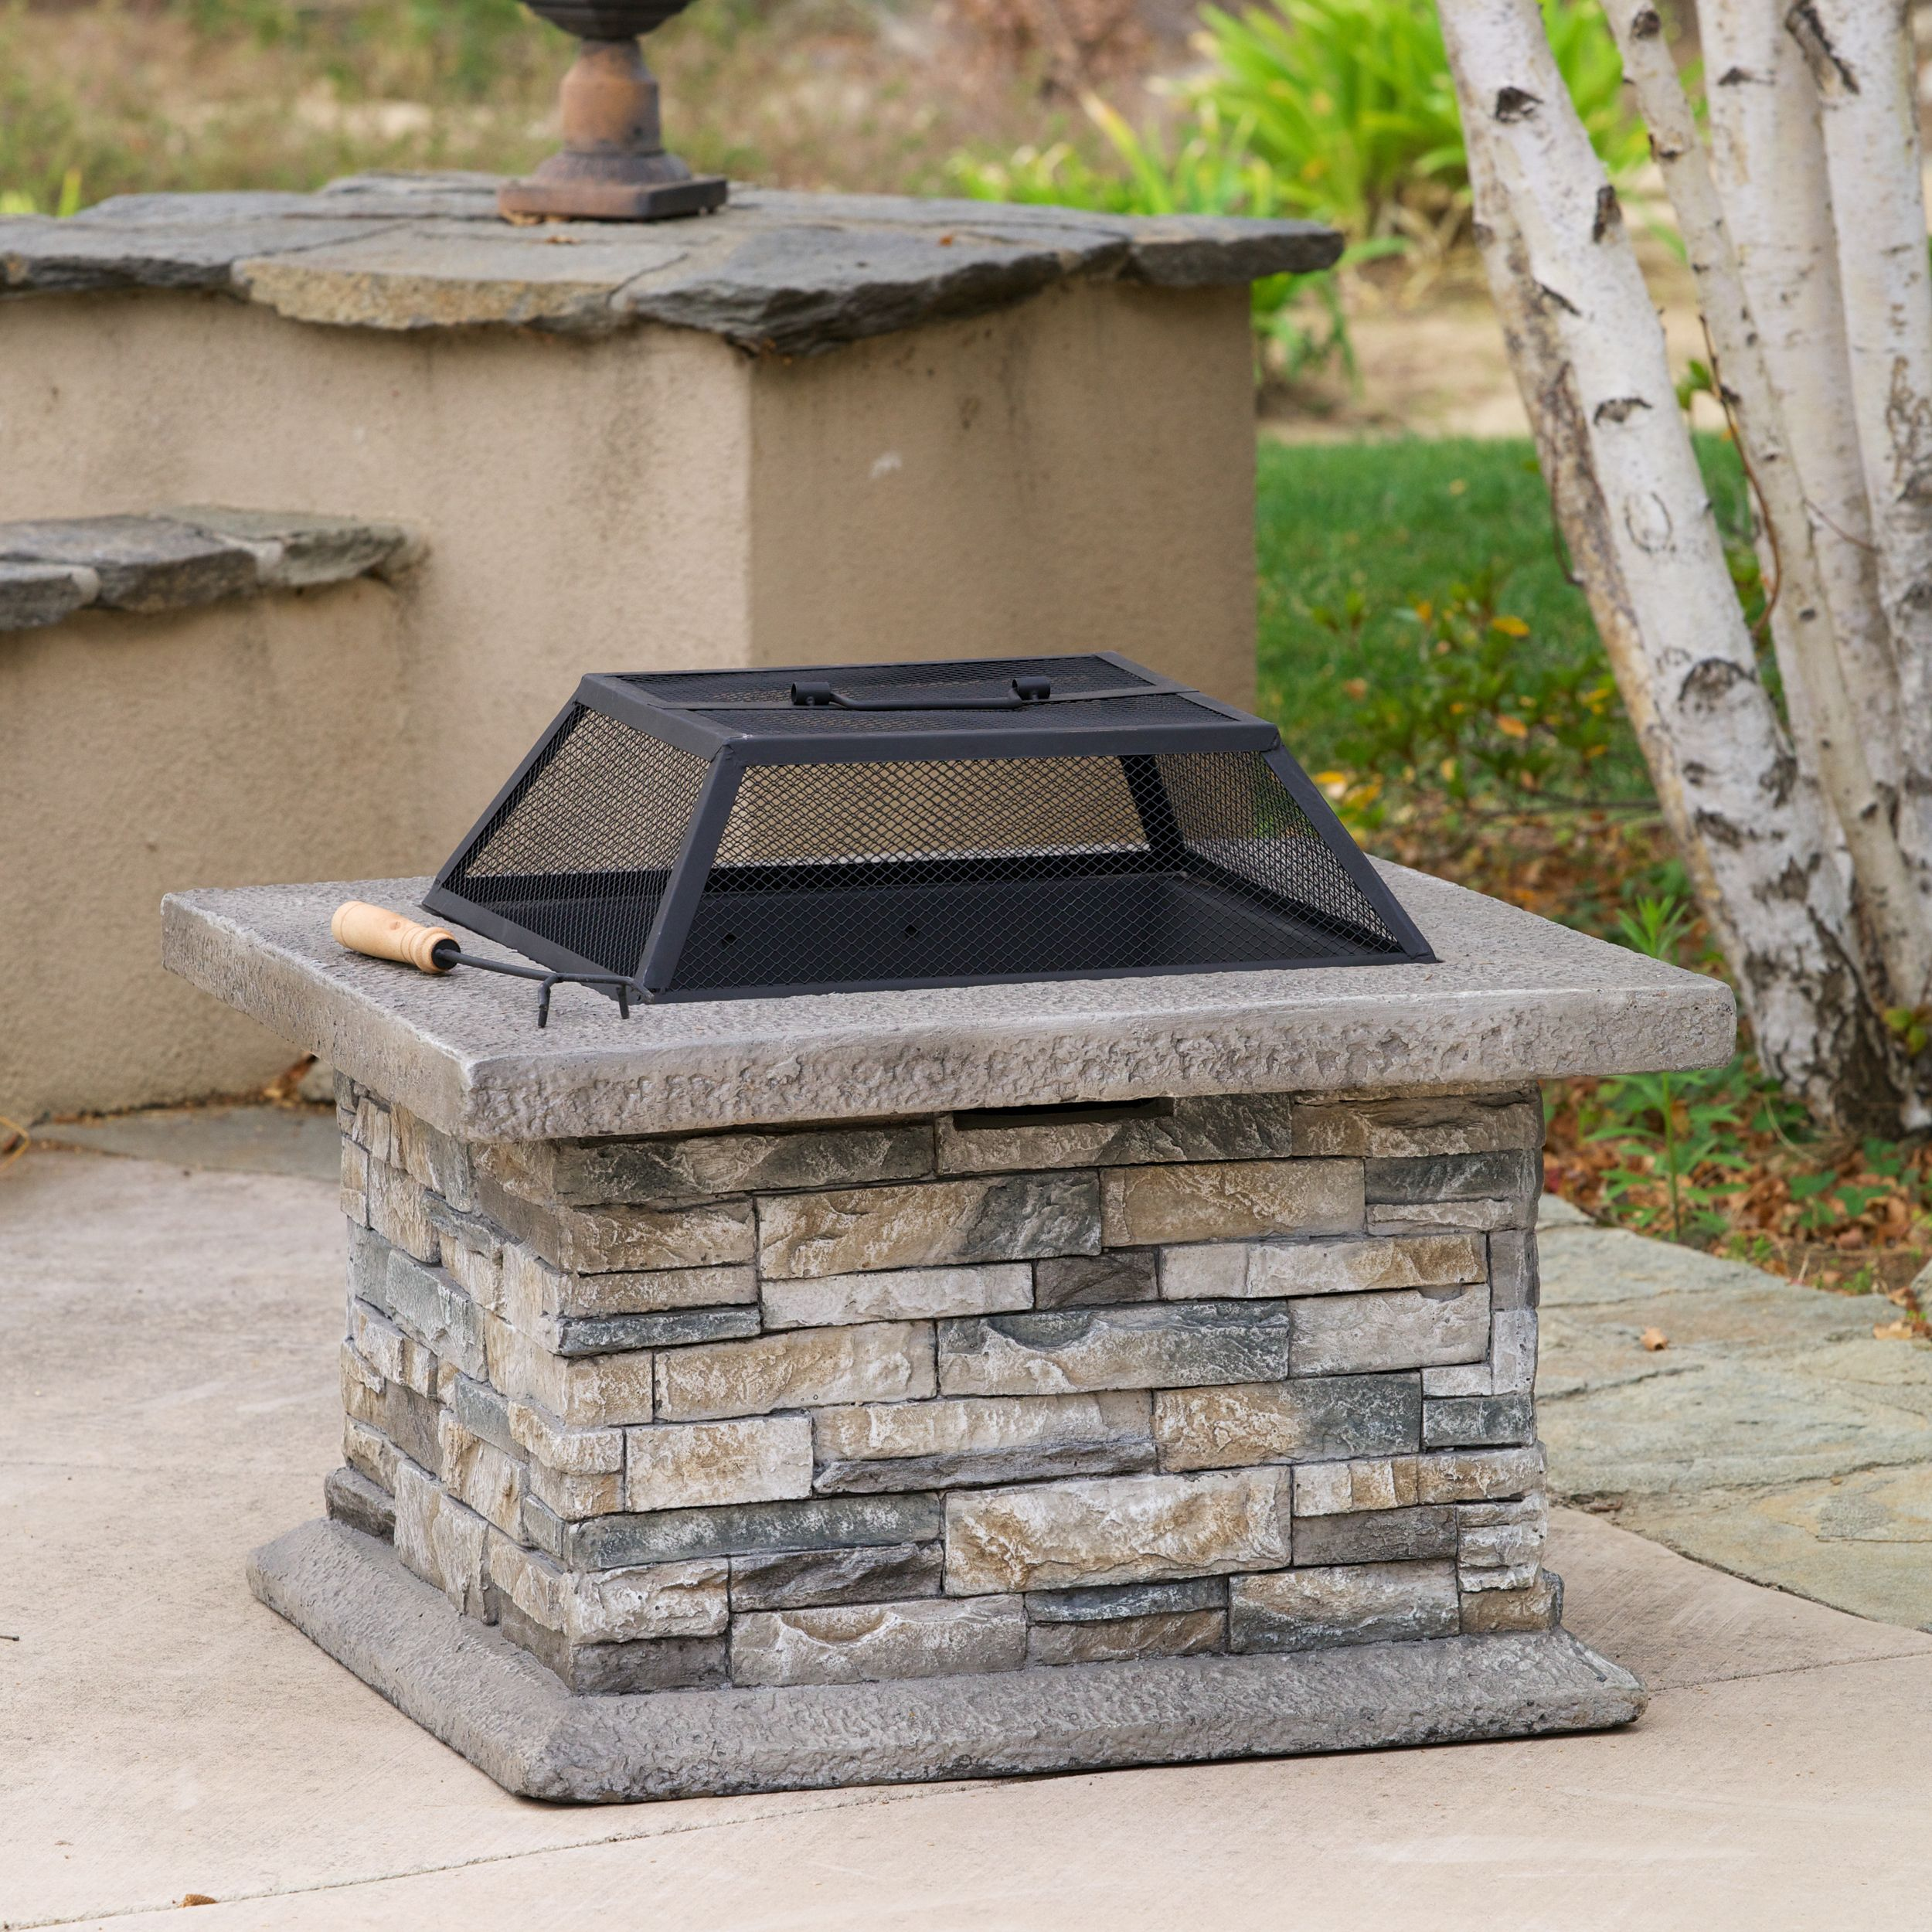 crestline outdoor natural stone fire pit overstocka shopping